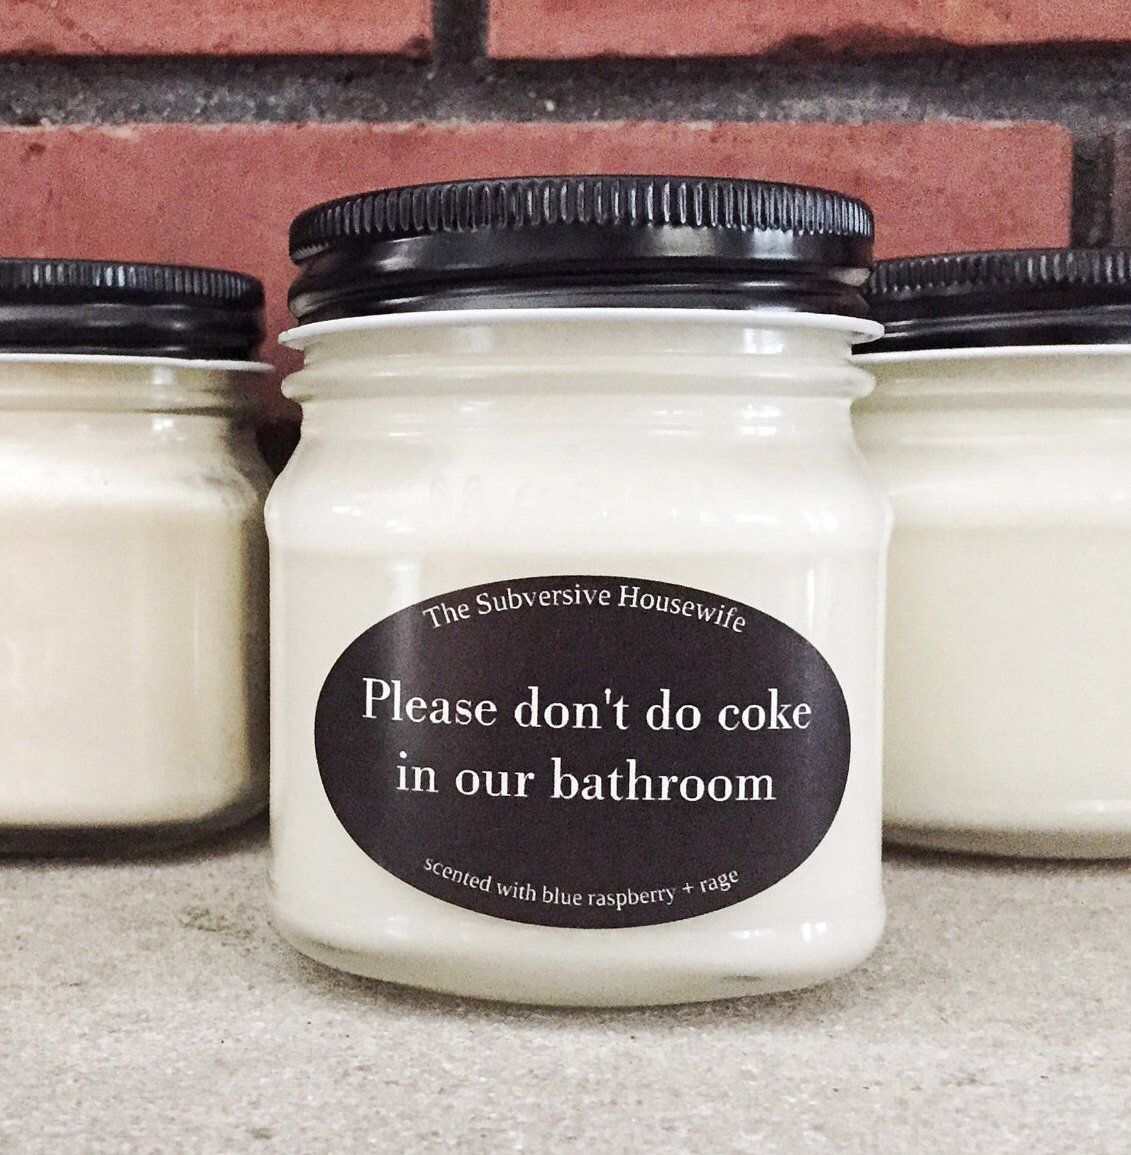 Funny housewarming gift funny candles funny scented